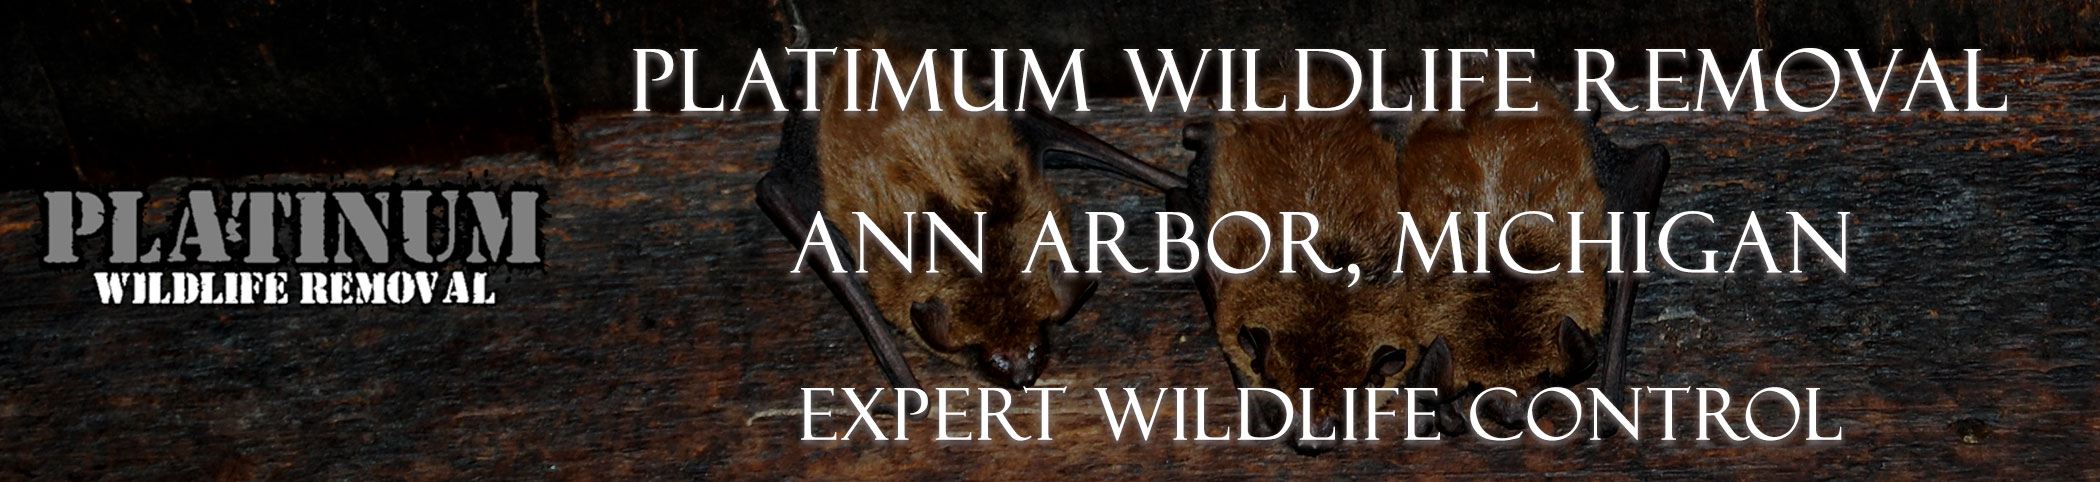 Ann-Arbor-Platinum-Wildlife-Removal_michgan